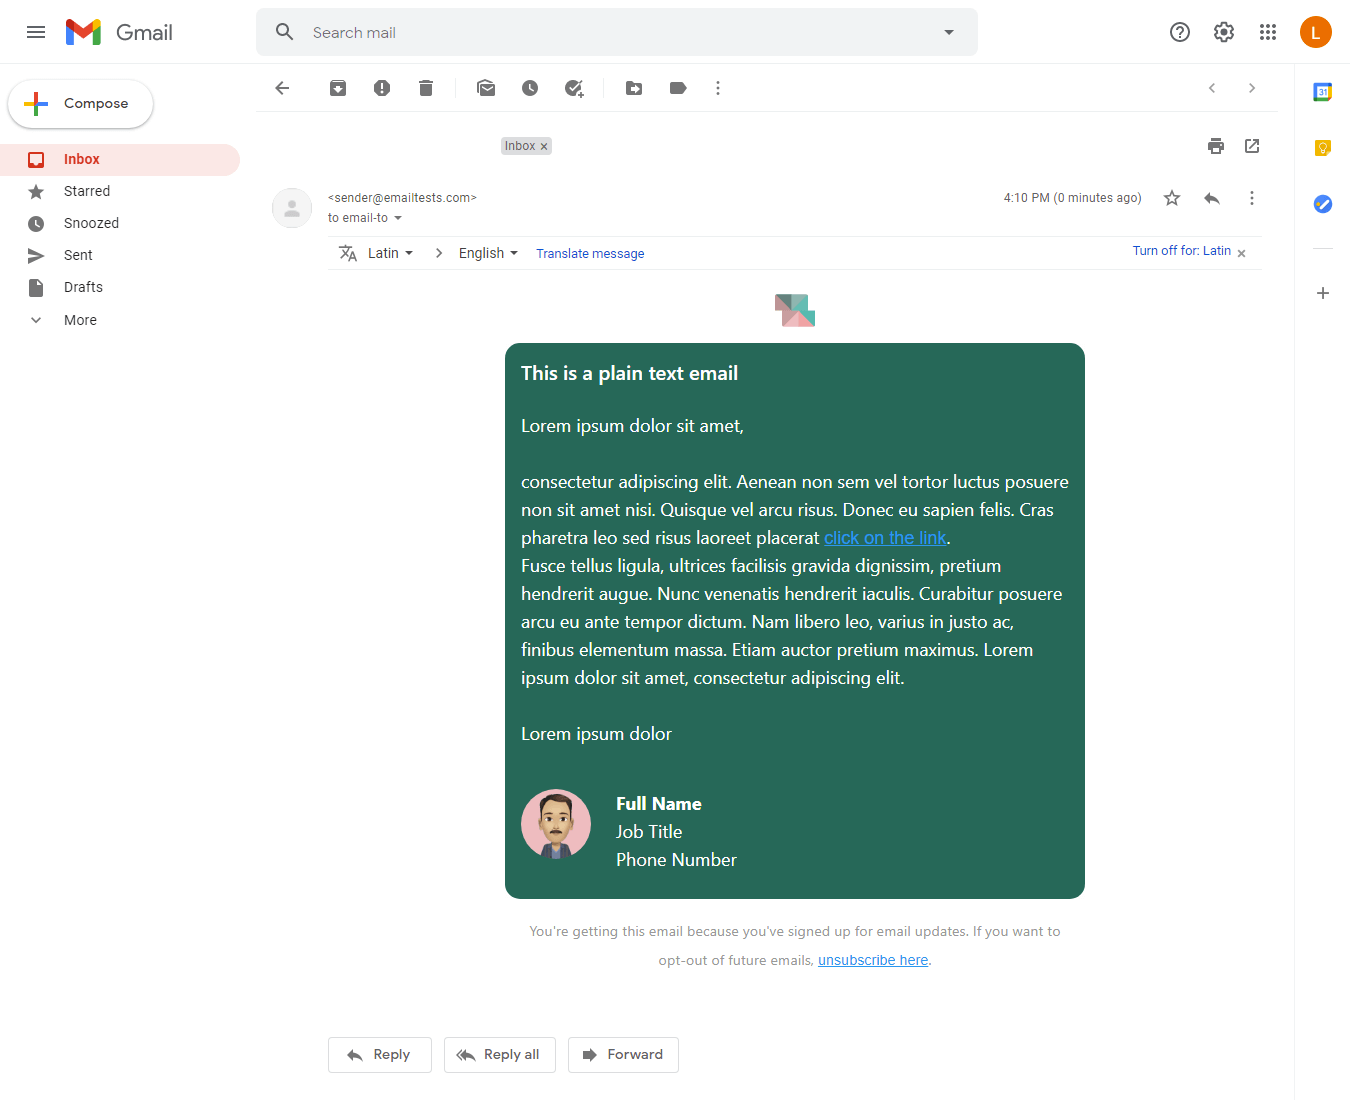 Screenshot of Colorful plain text email display on Gmail